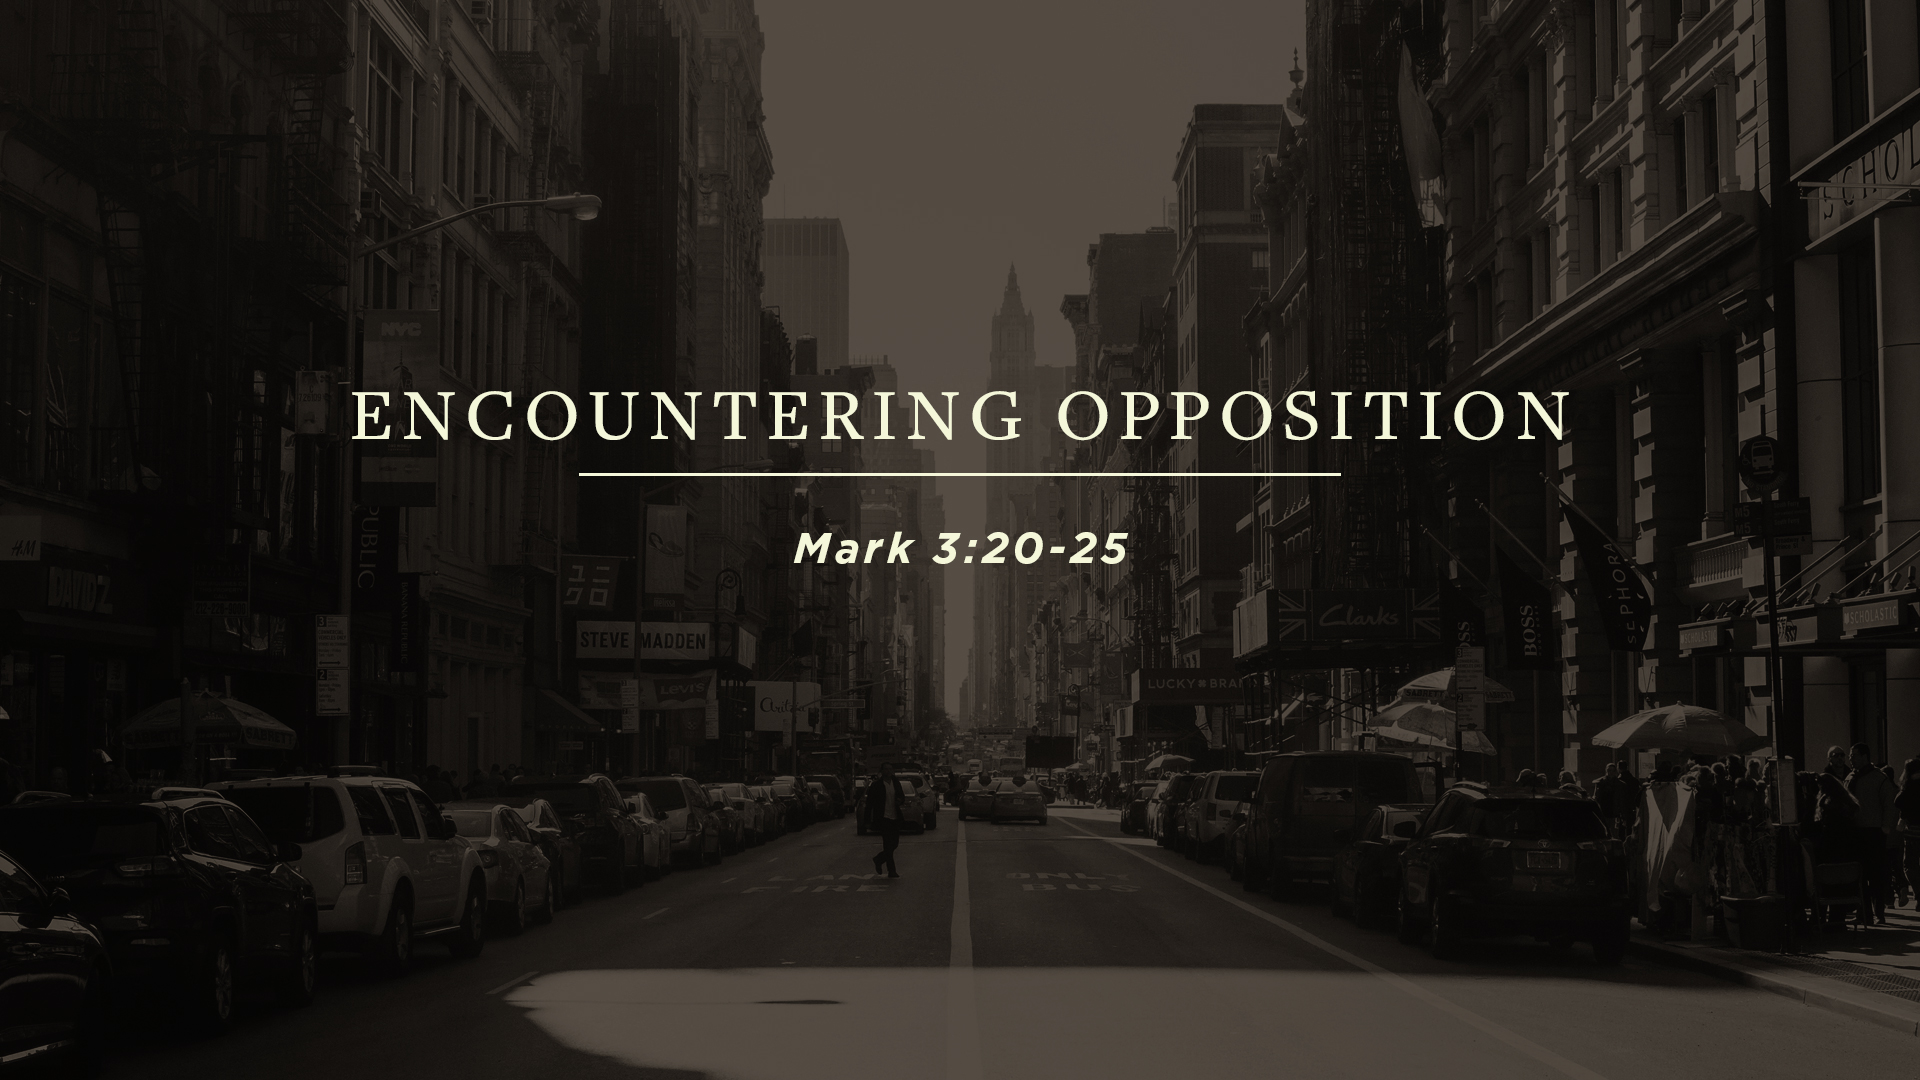 Encountering Opposition